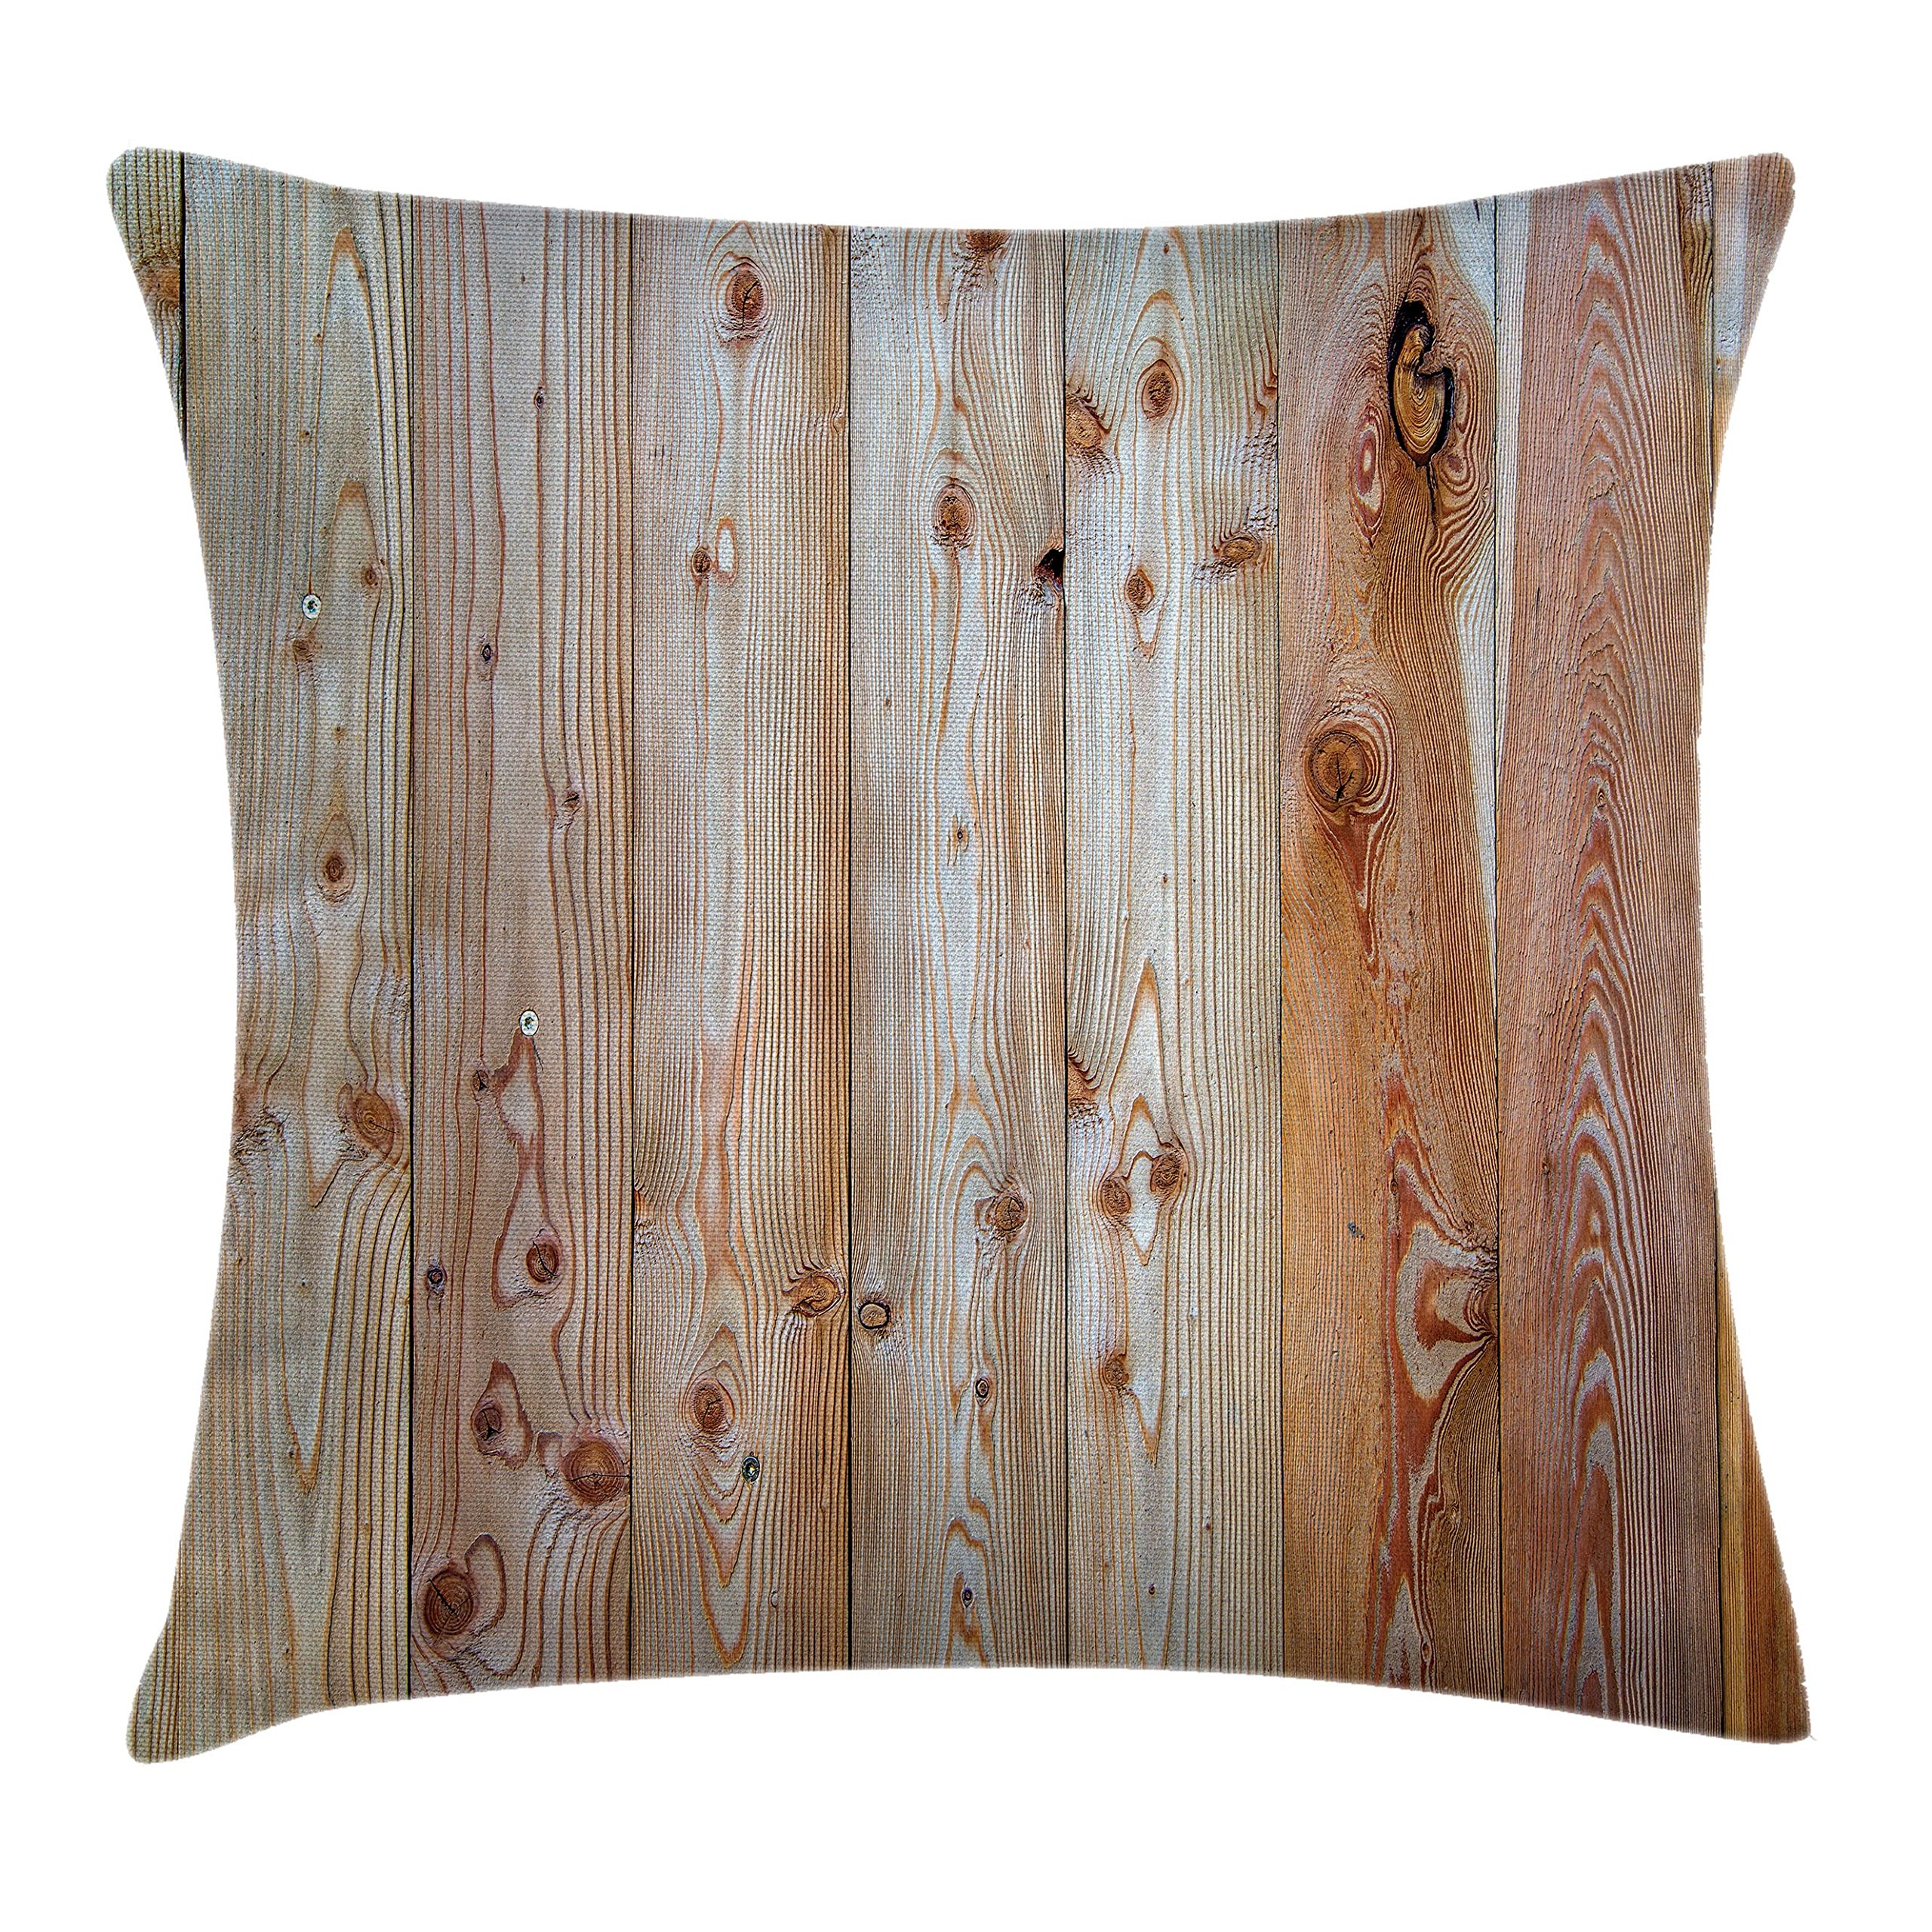 Ambesonne Rustic Home Decor Throw Pillow Cushion Cover by, Monochrome Wood Minimalist Rough Lined Up Tiled Logs Row Plank Surface Image, Decorative Square Accent Pillow Case, 24 X 24 Inches, Cream